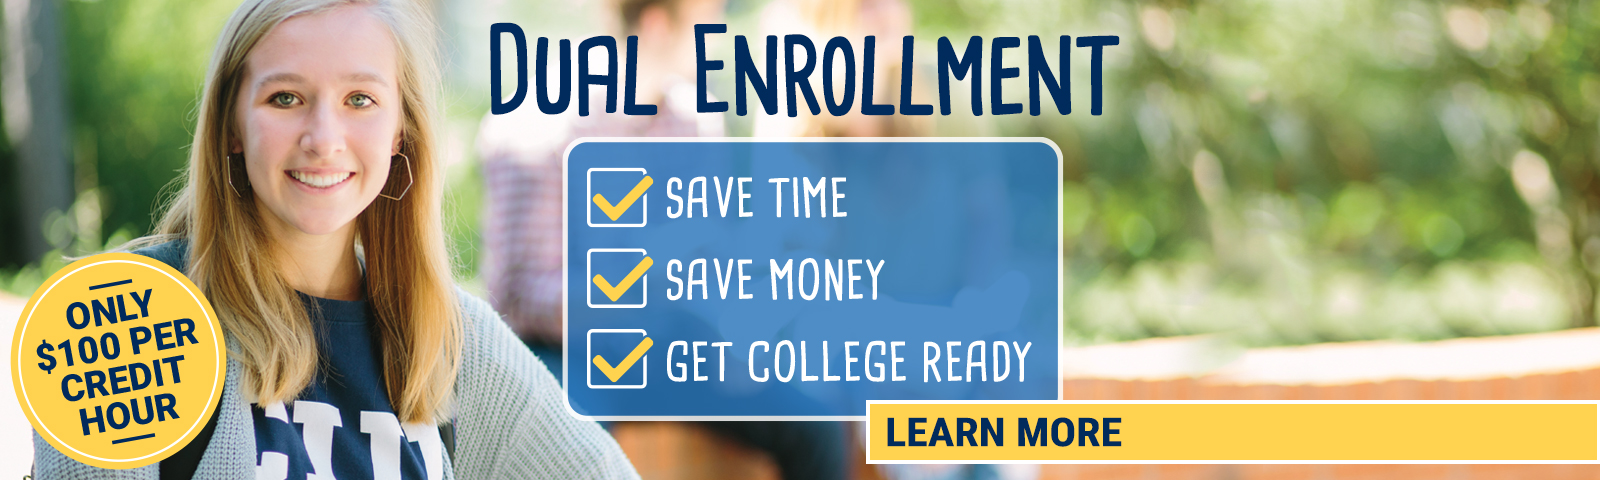 Save time and money with Dual Enrollment courses at CIU!